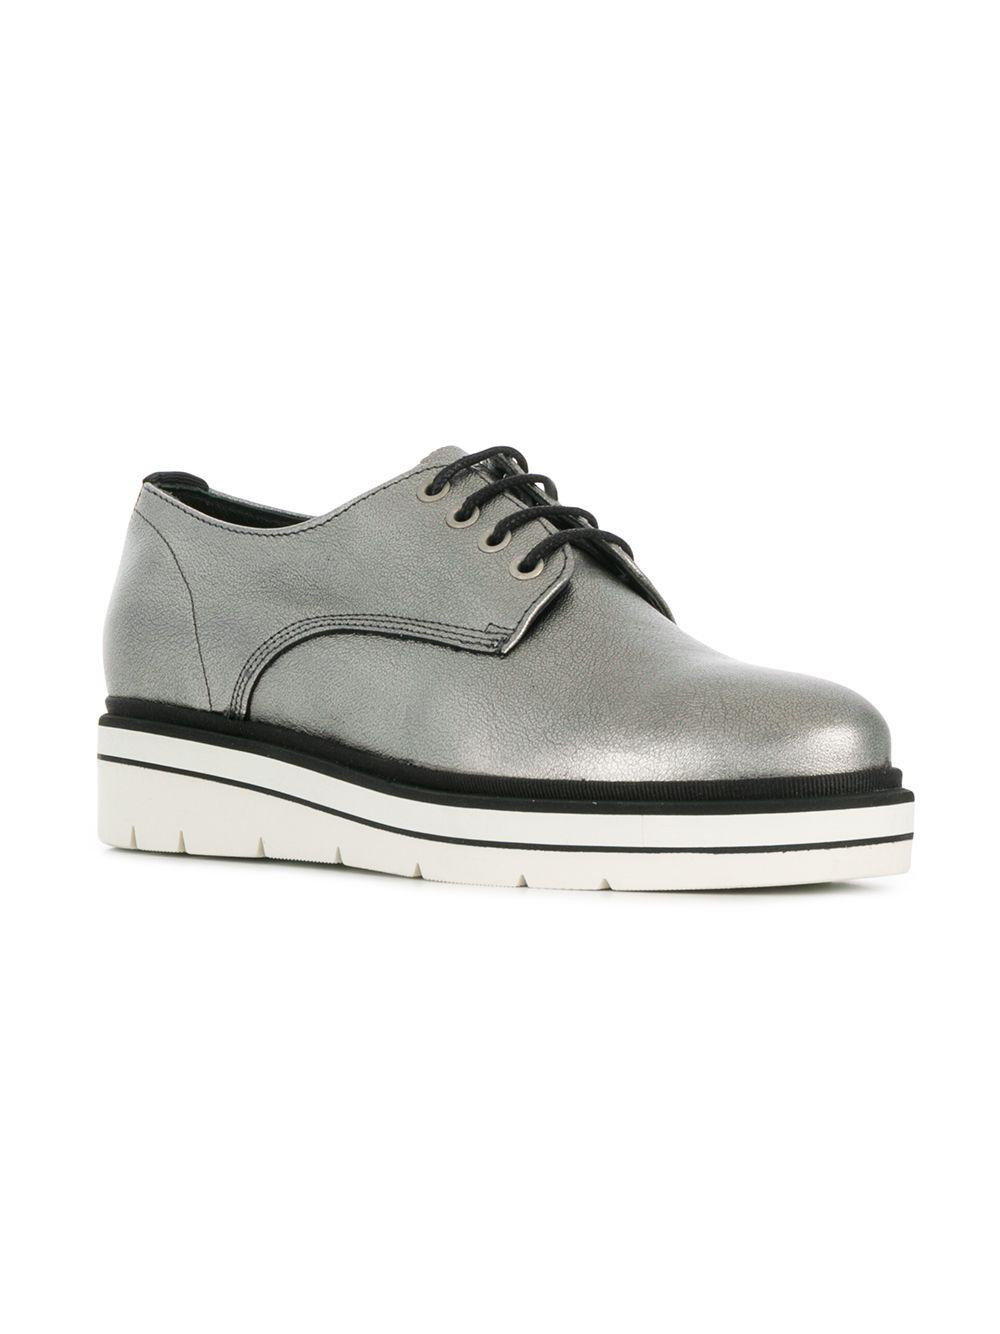 4fb5c5878c0 Lyst - Tommy Hilfiger Oxford Style Sneakers in Metallic